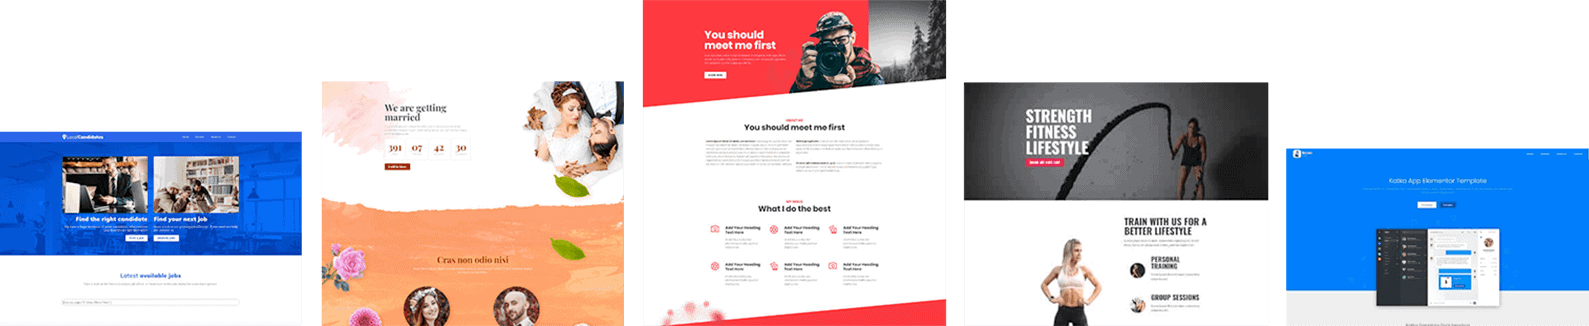 Elementor page templates